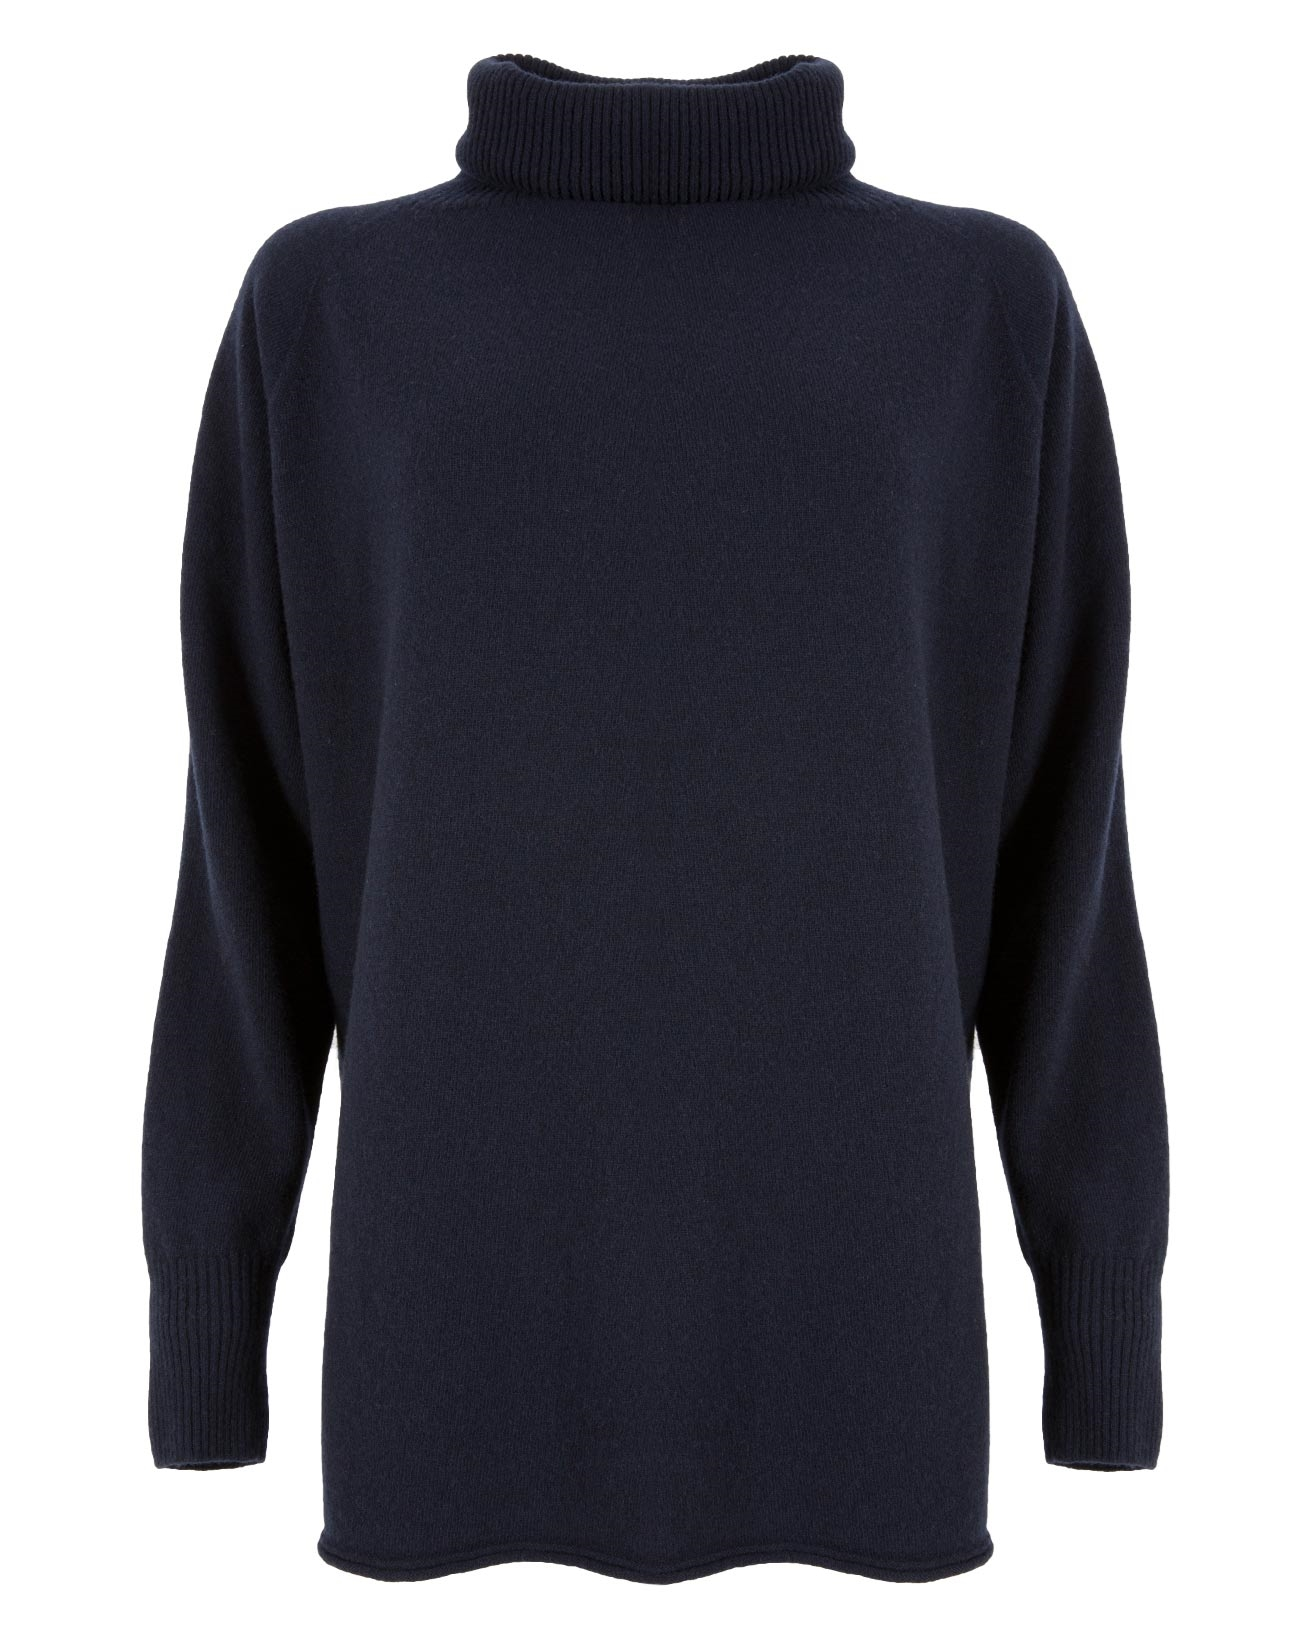 7505_geelong_slouch_roll_neck_navy-front.jpg